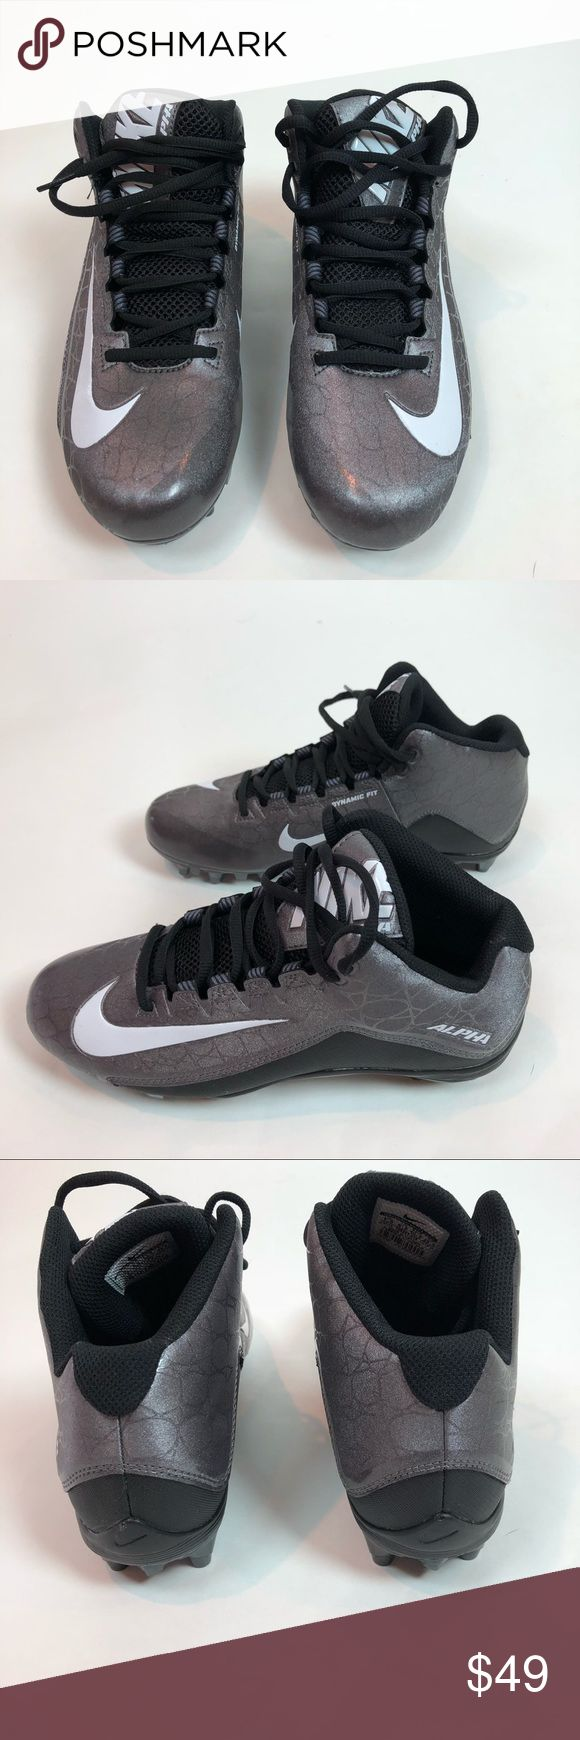 Nike Mens Football Cleats Alpha Strike 2 Size 7.5 Brand new without box! Nike men's football cleats. Nike Shoes Athletic Shoes